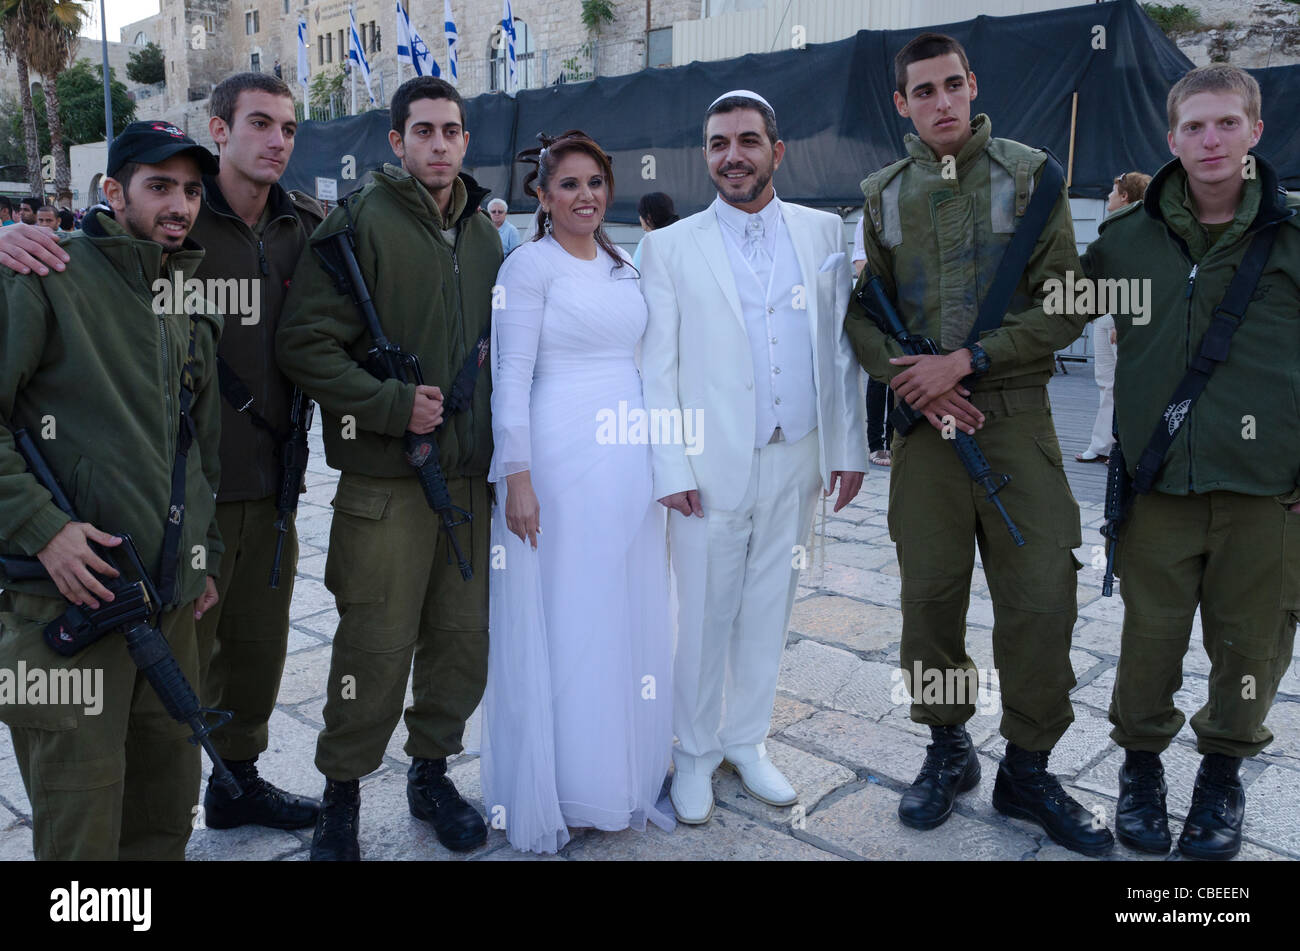 newly married couple with israeli soldiers. Western Wall. Jerusalem Old City. Israel - Stock Image